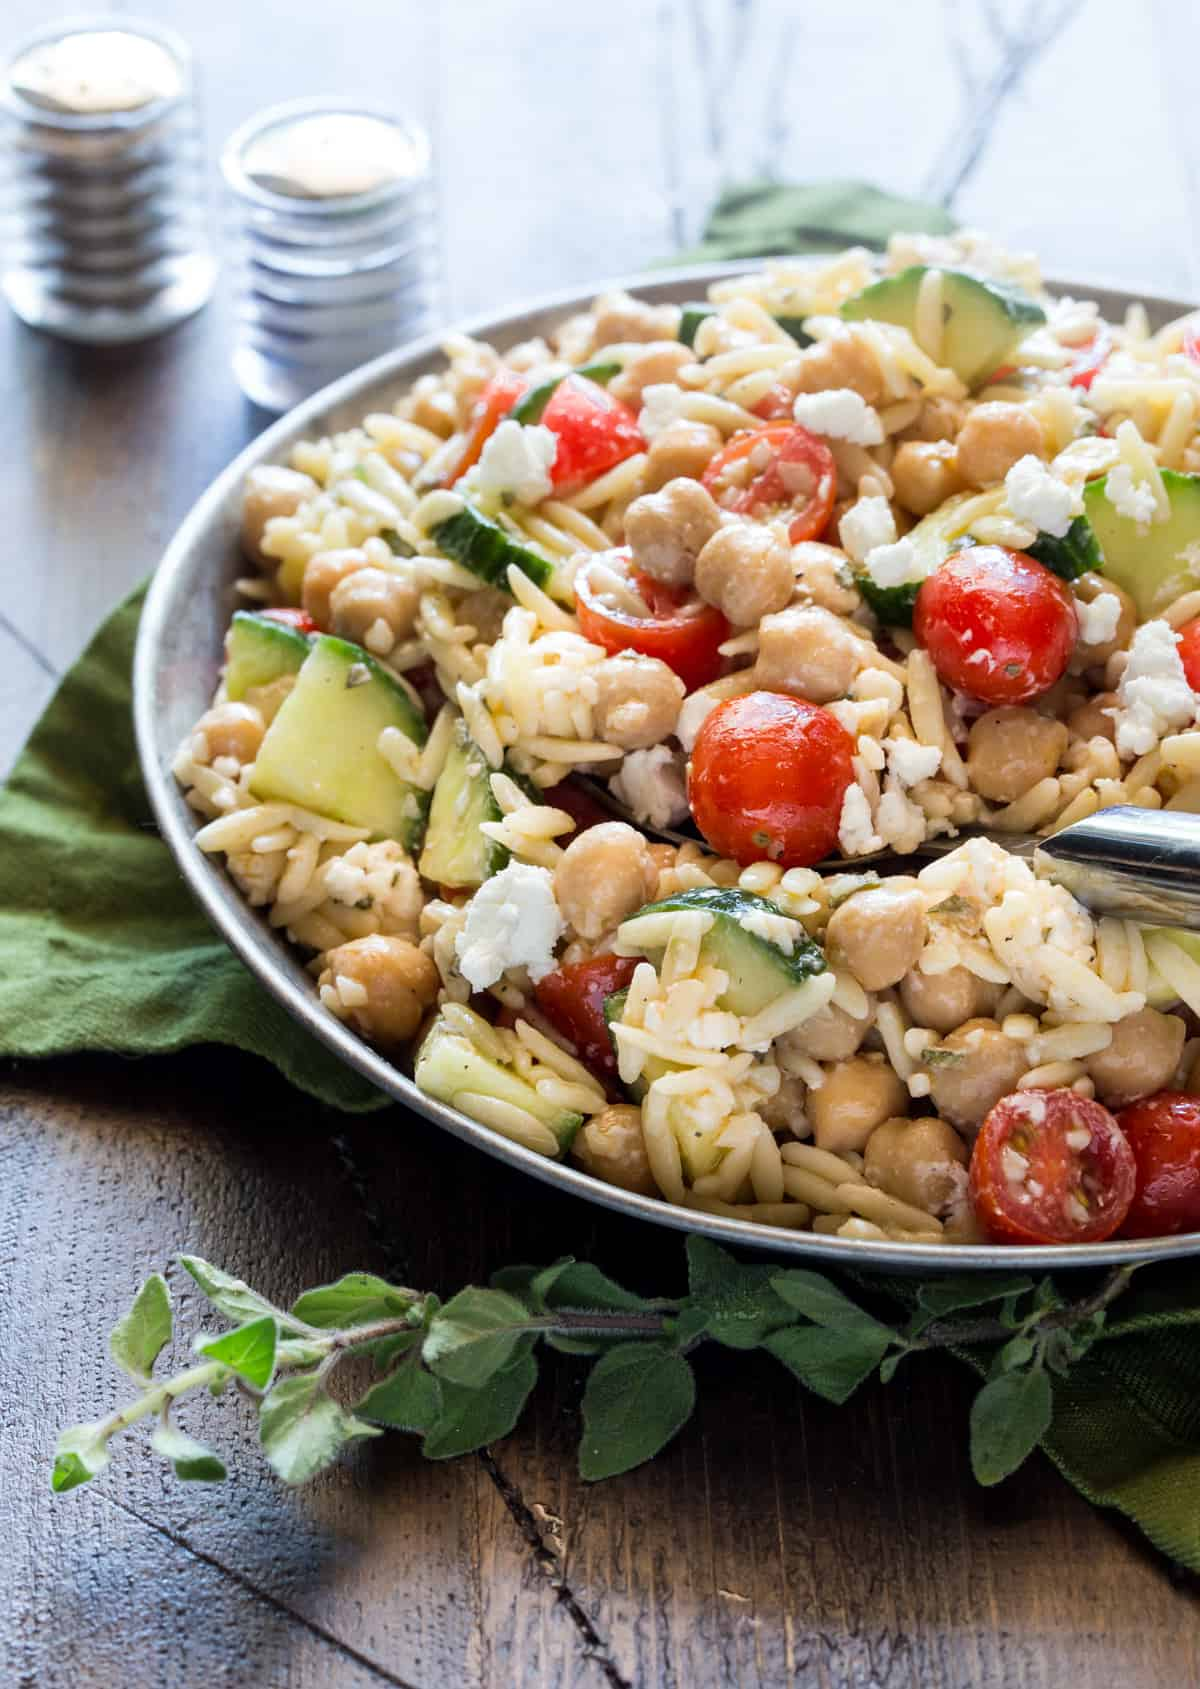 Chickpea Salad recipe in a silver dish on a wood board. Garnished with fresh oregano.